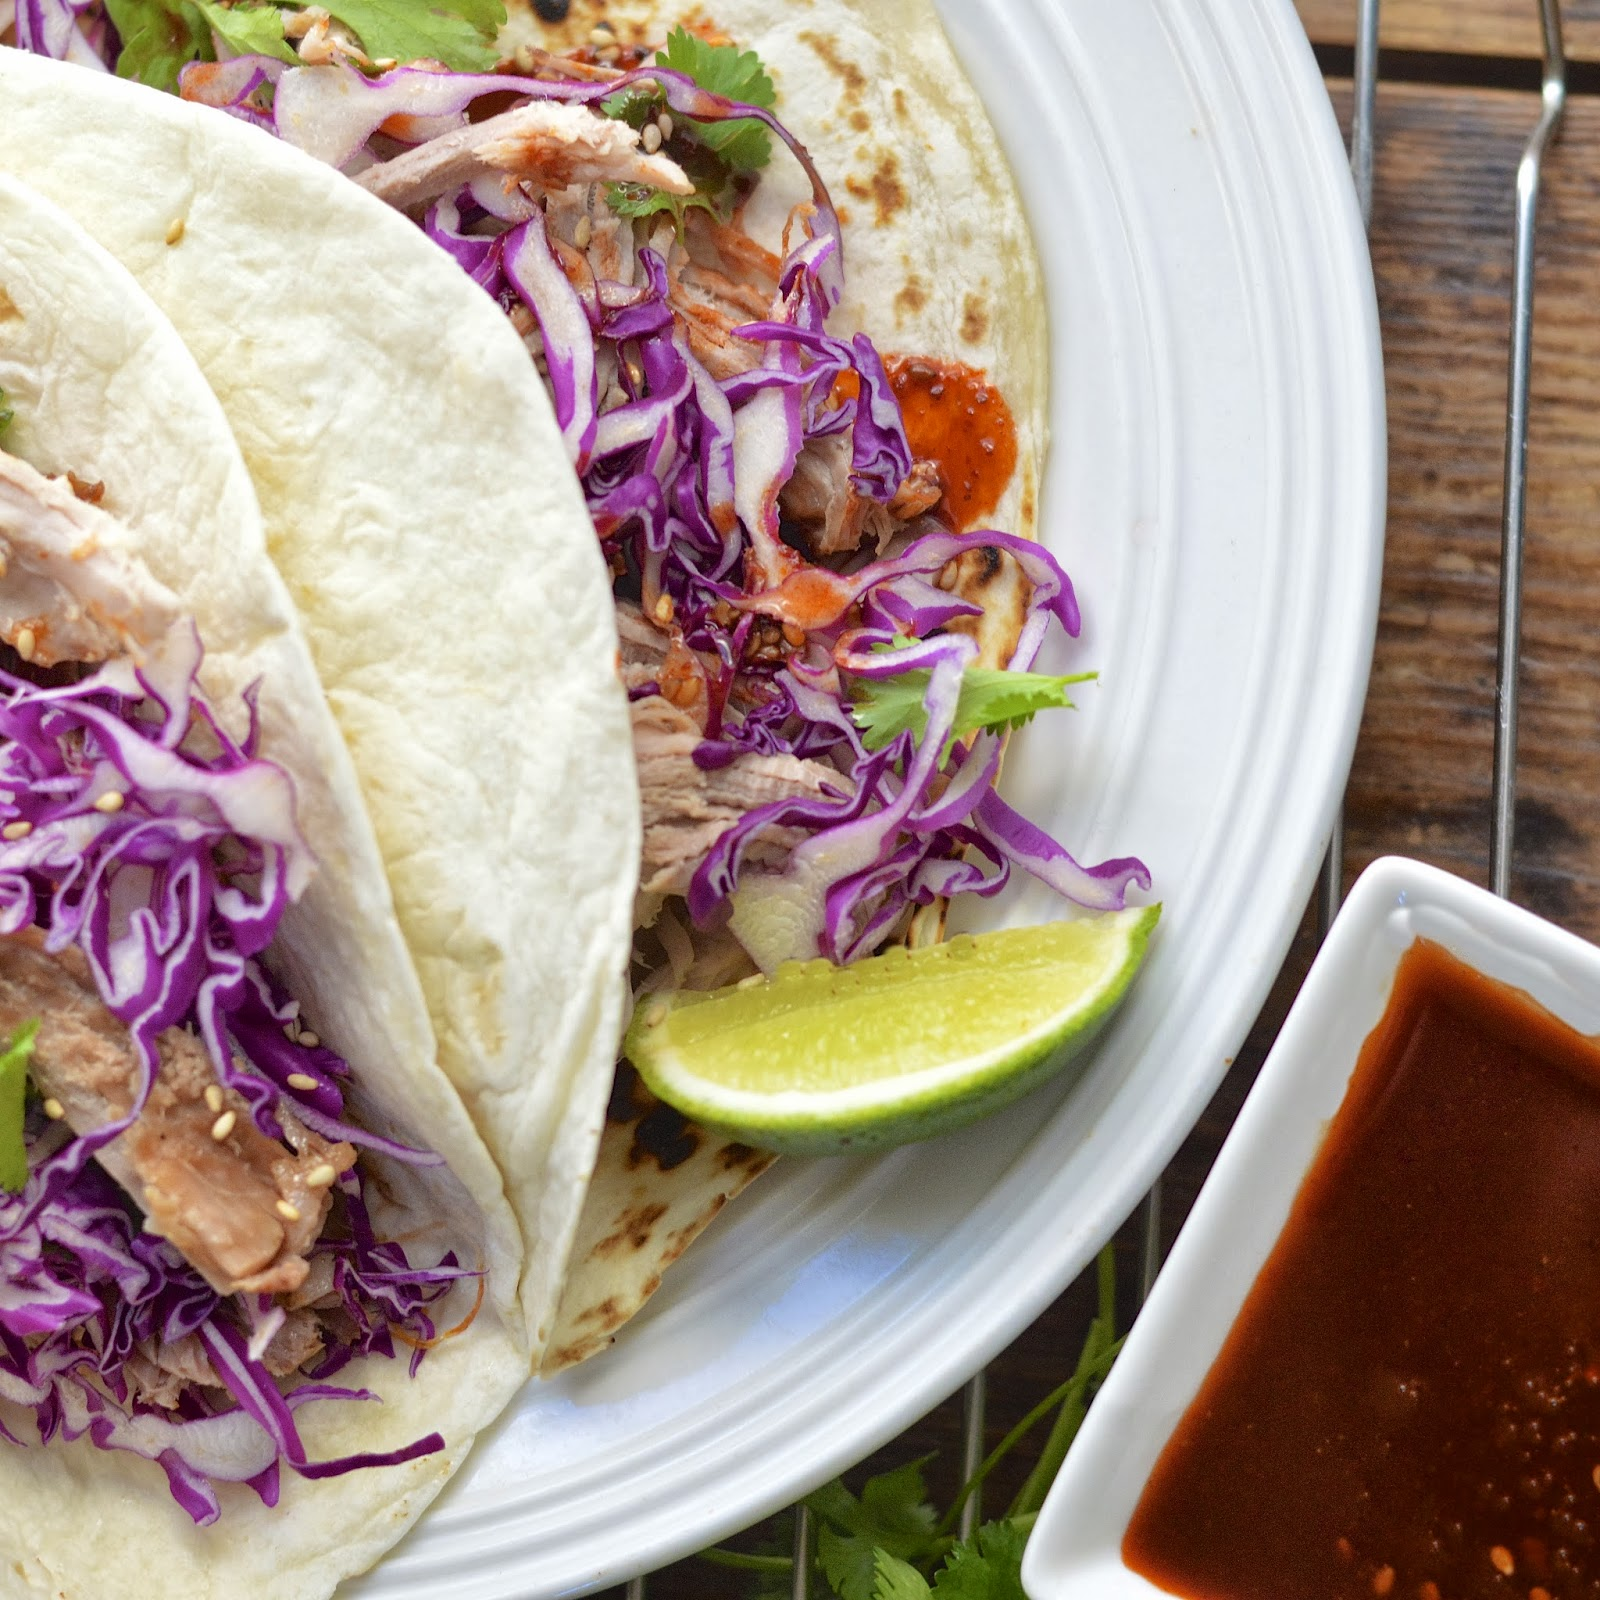 Diy Korean Bbq Sauce: Korean Tacos With Pulled Pork